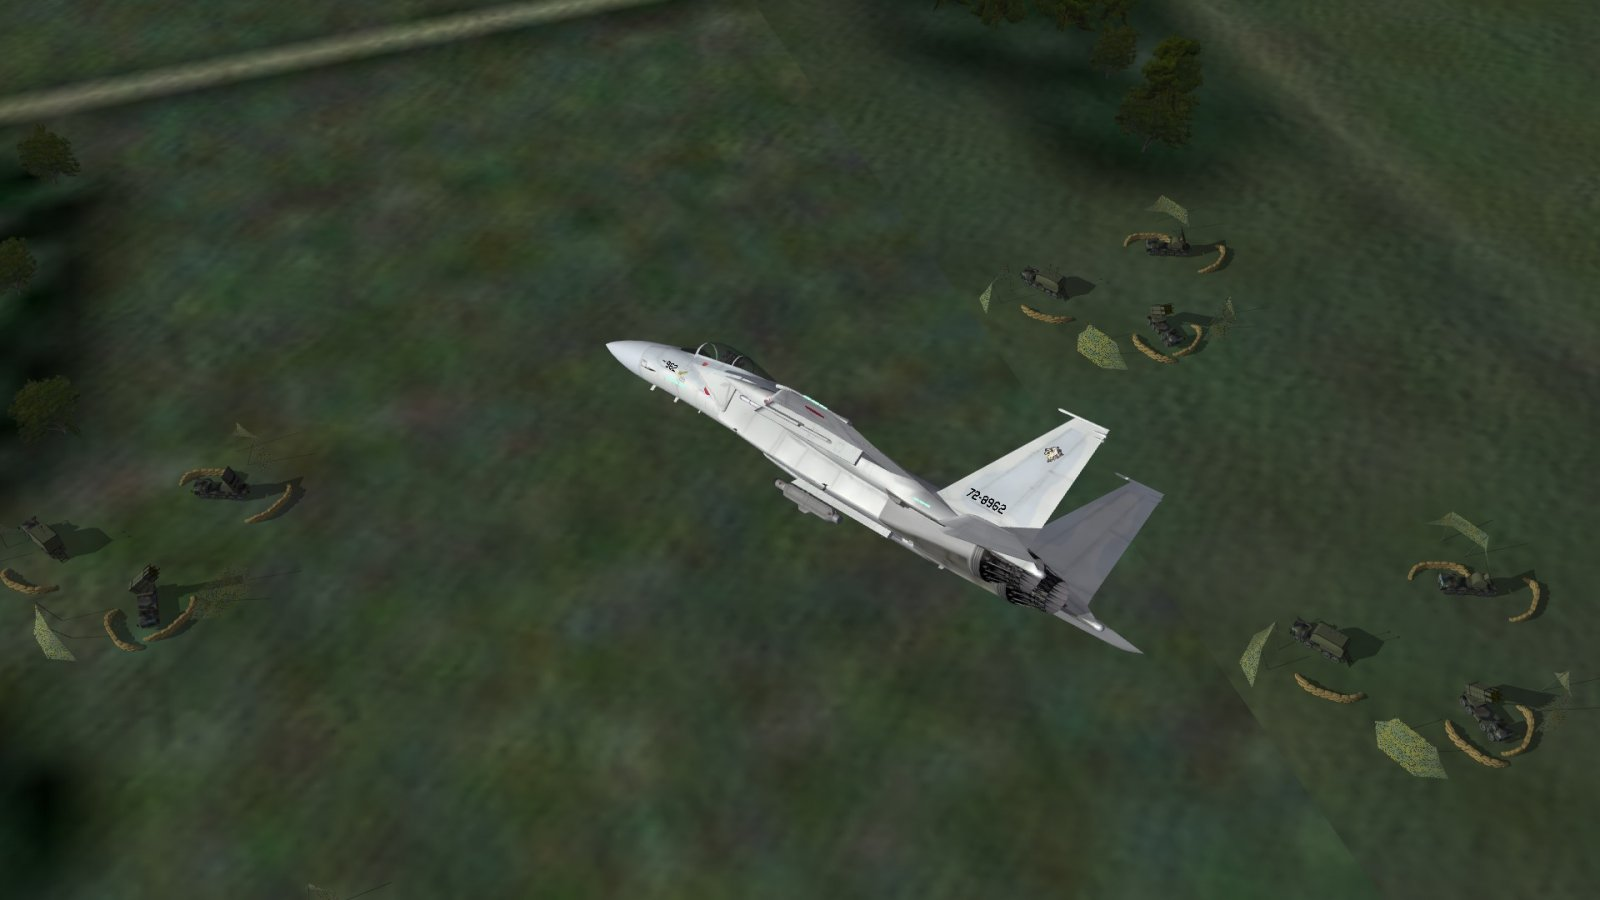 Overflying the Patriot Site of Mission 1